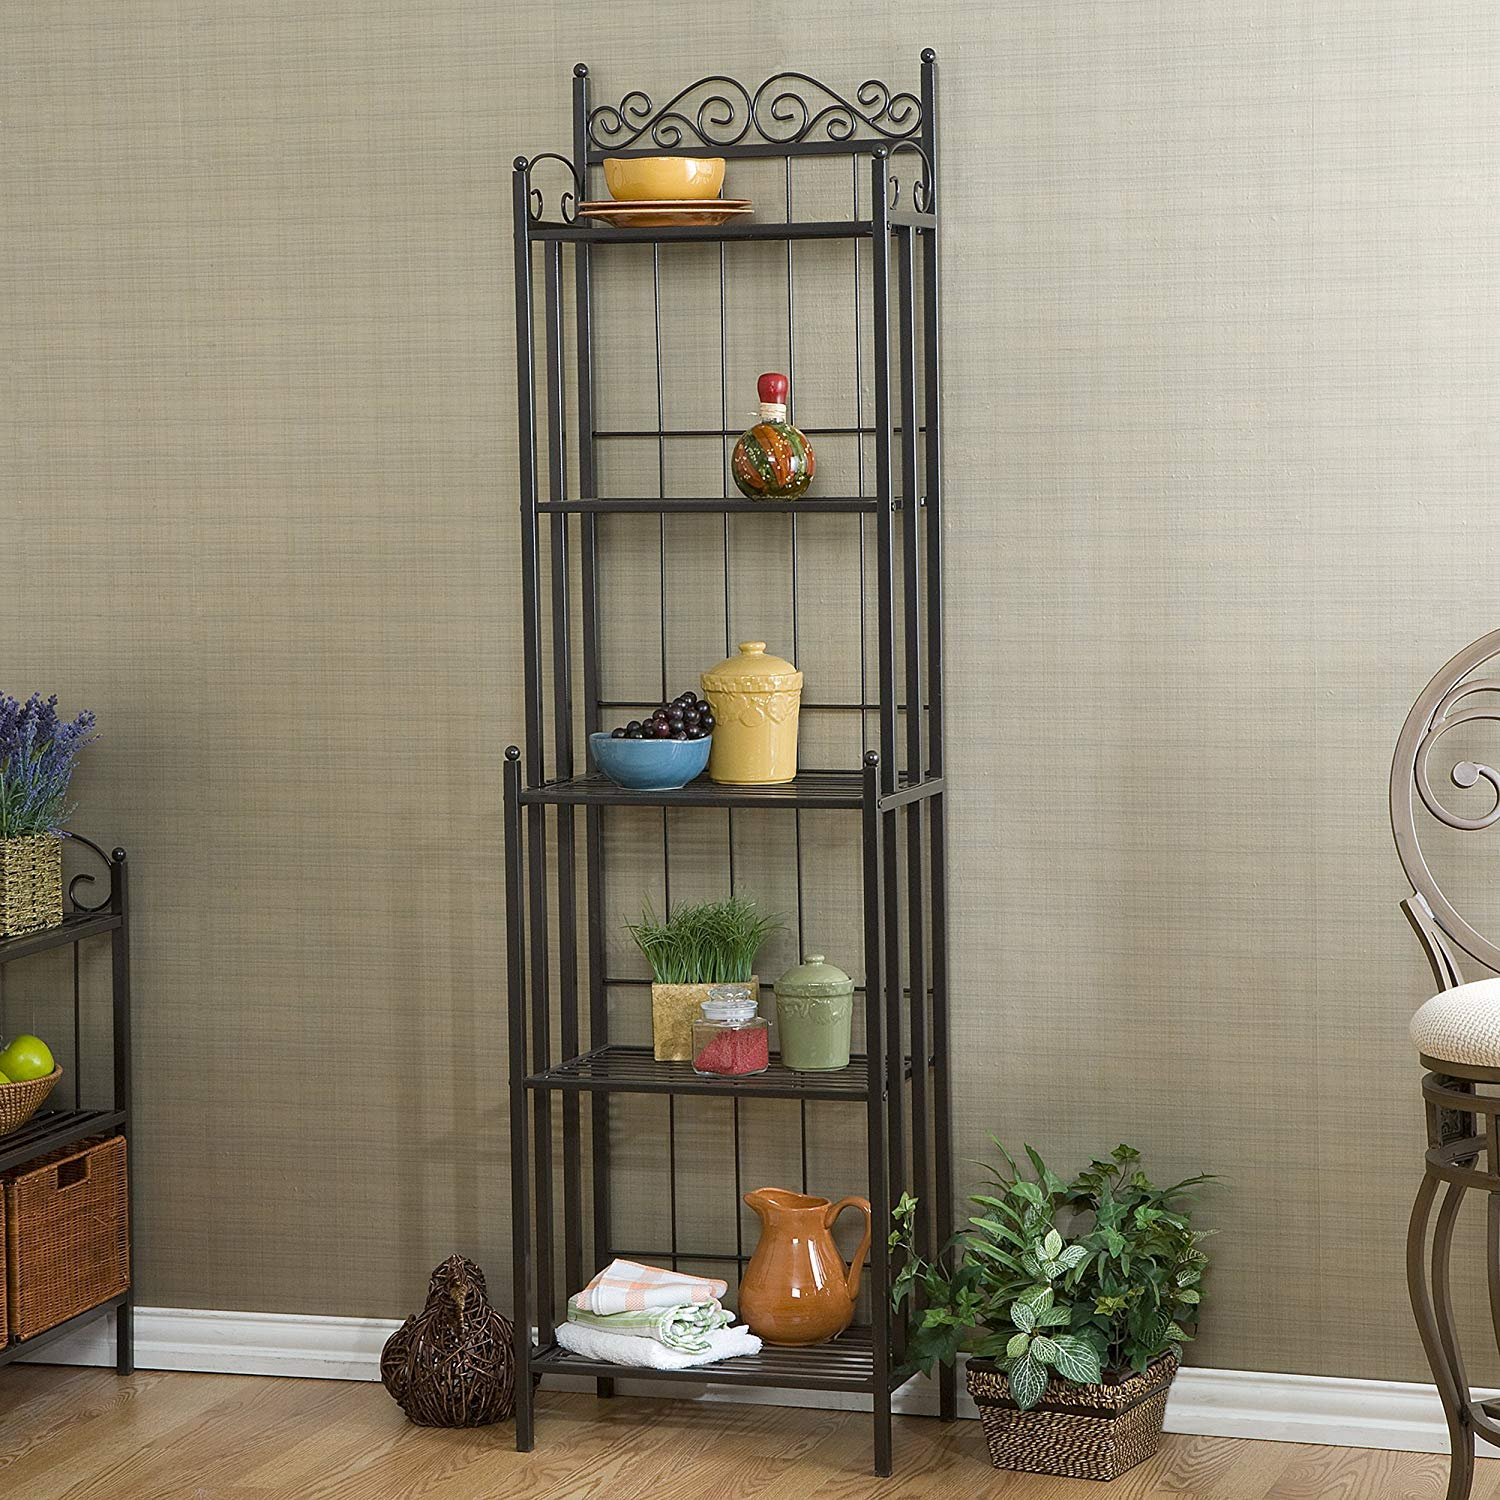 Versatile Vertical Victorian Style 5 Tier Standing Narrow Baker Rack, Planter Stand Storage Shelf for Indoor with Iron Frame, Balcony Shelving Unit, Rustproof Organizer for Corner, Plant Shelves